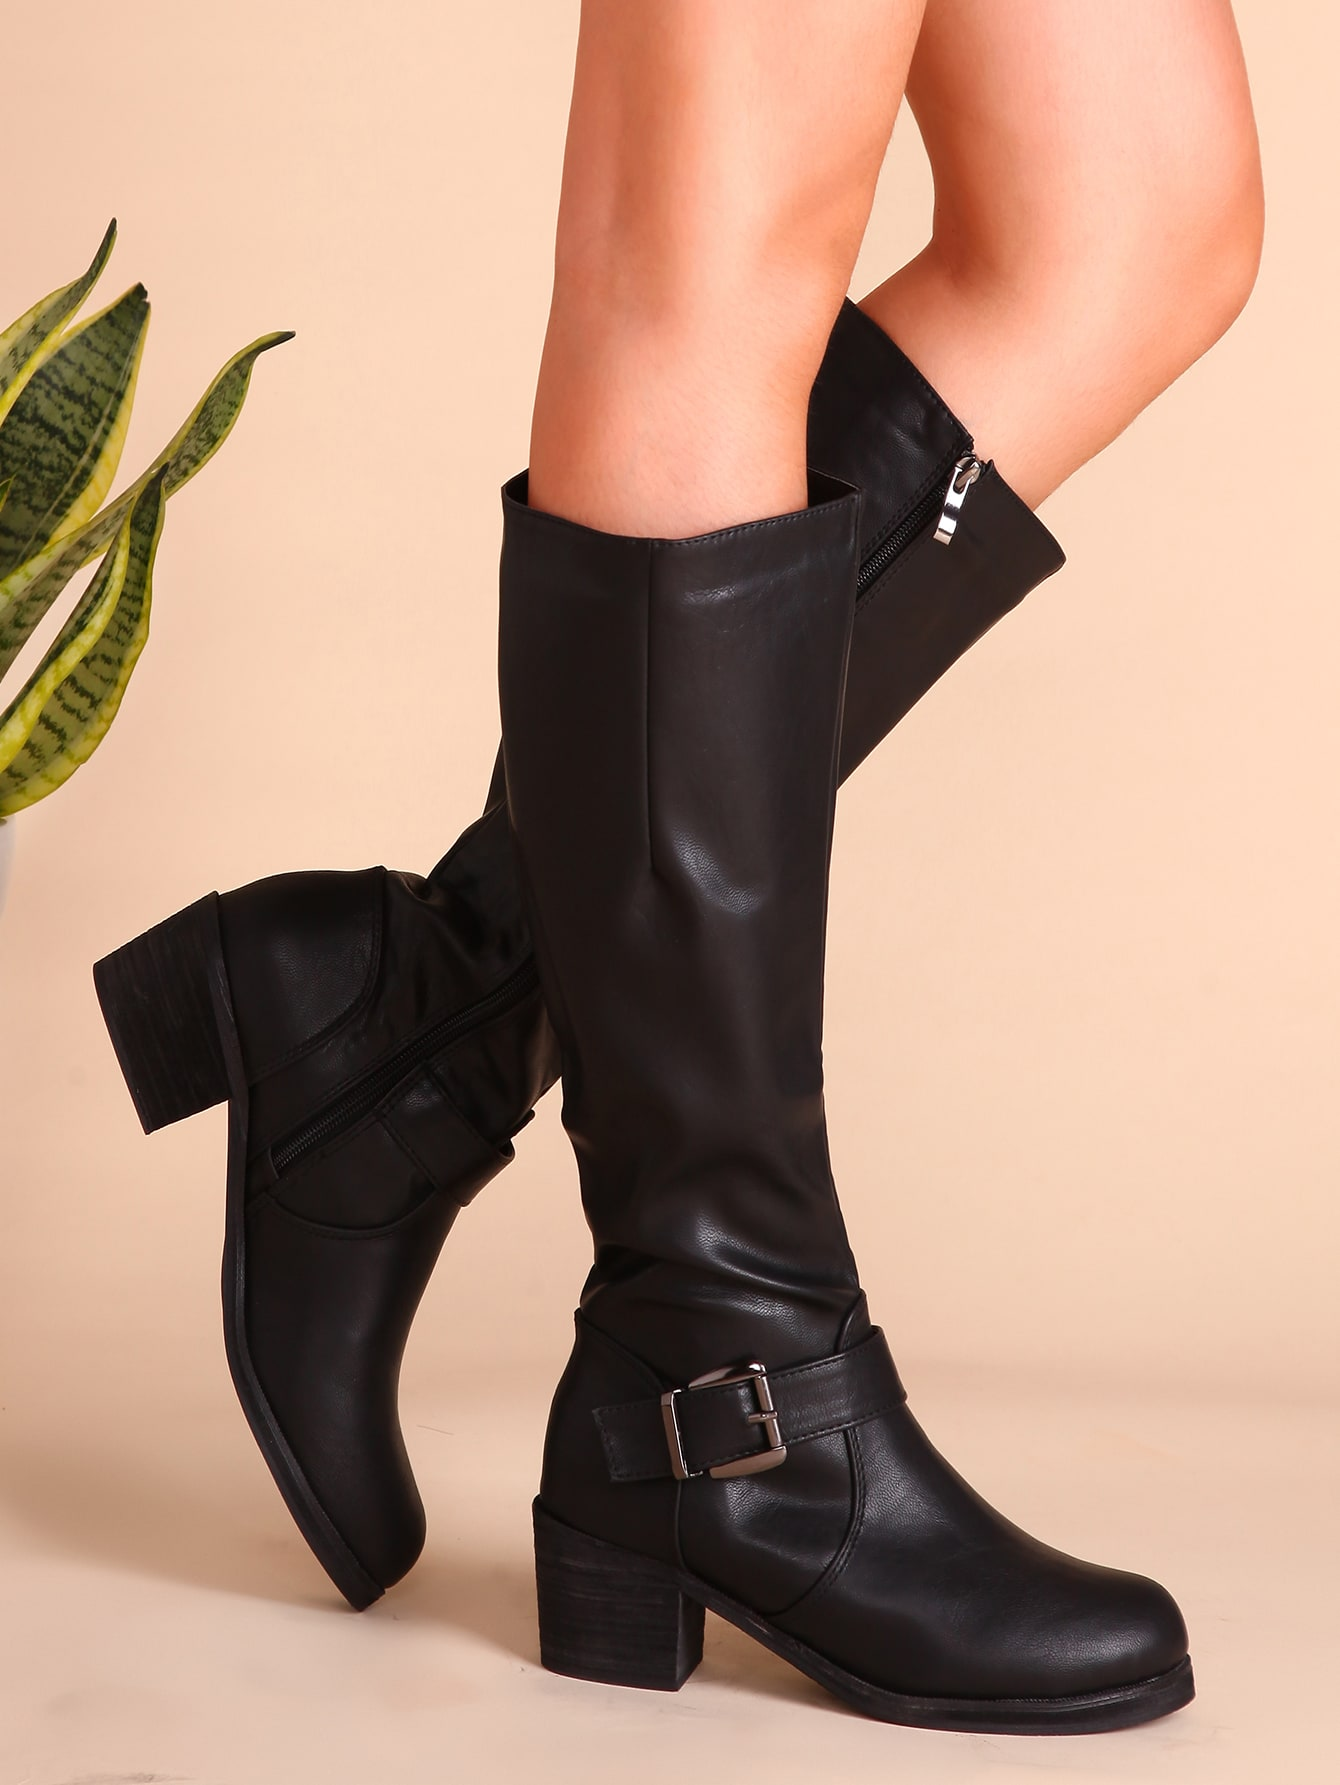 Black Buckled PU Chunky Heel Tall Boots shoes161121801